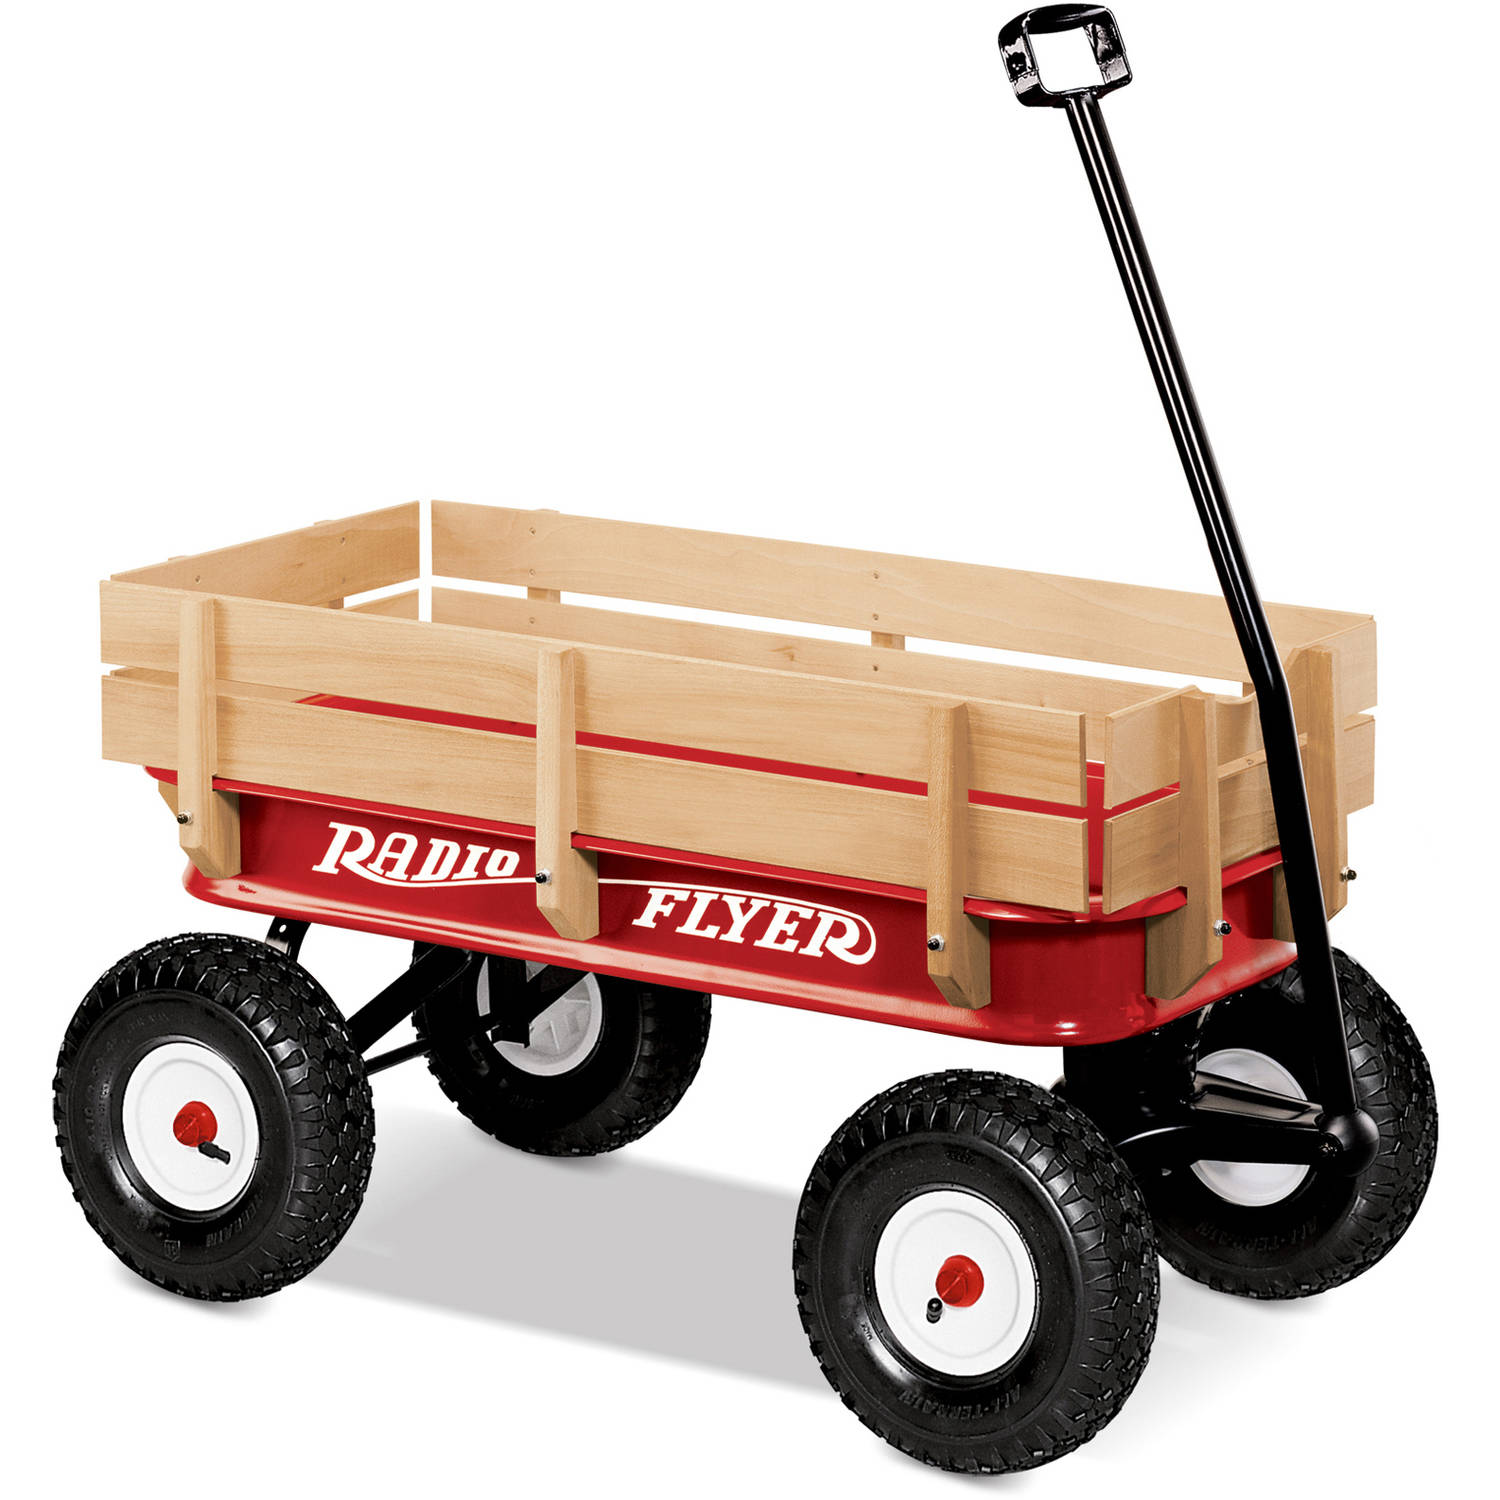 Radio Flyer, All-Terrain Steel and Wood Wagon, Air Tires, Red by Radio Flyer